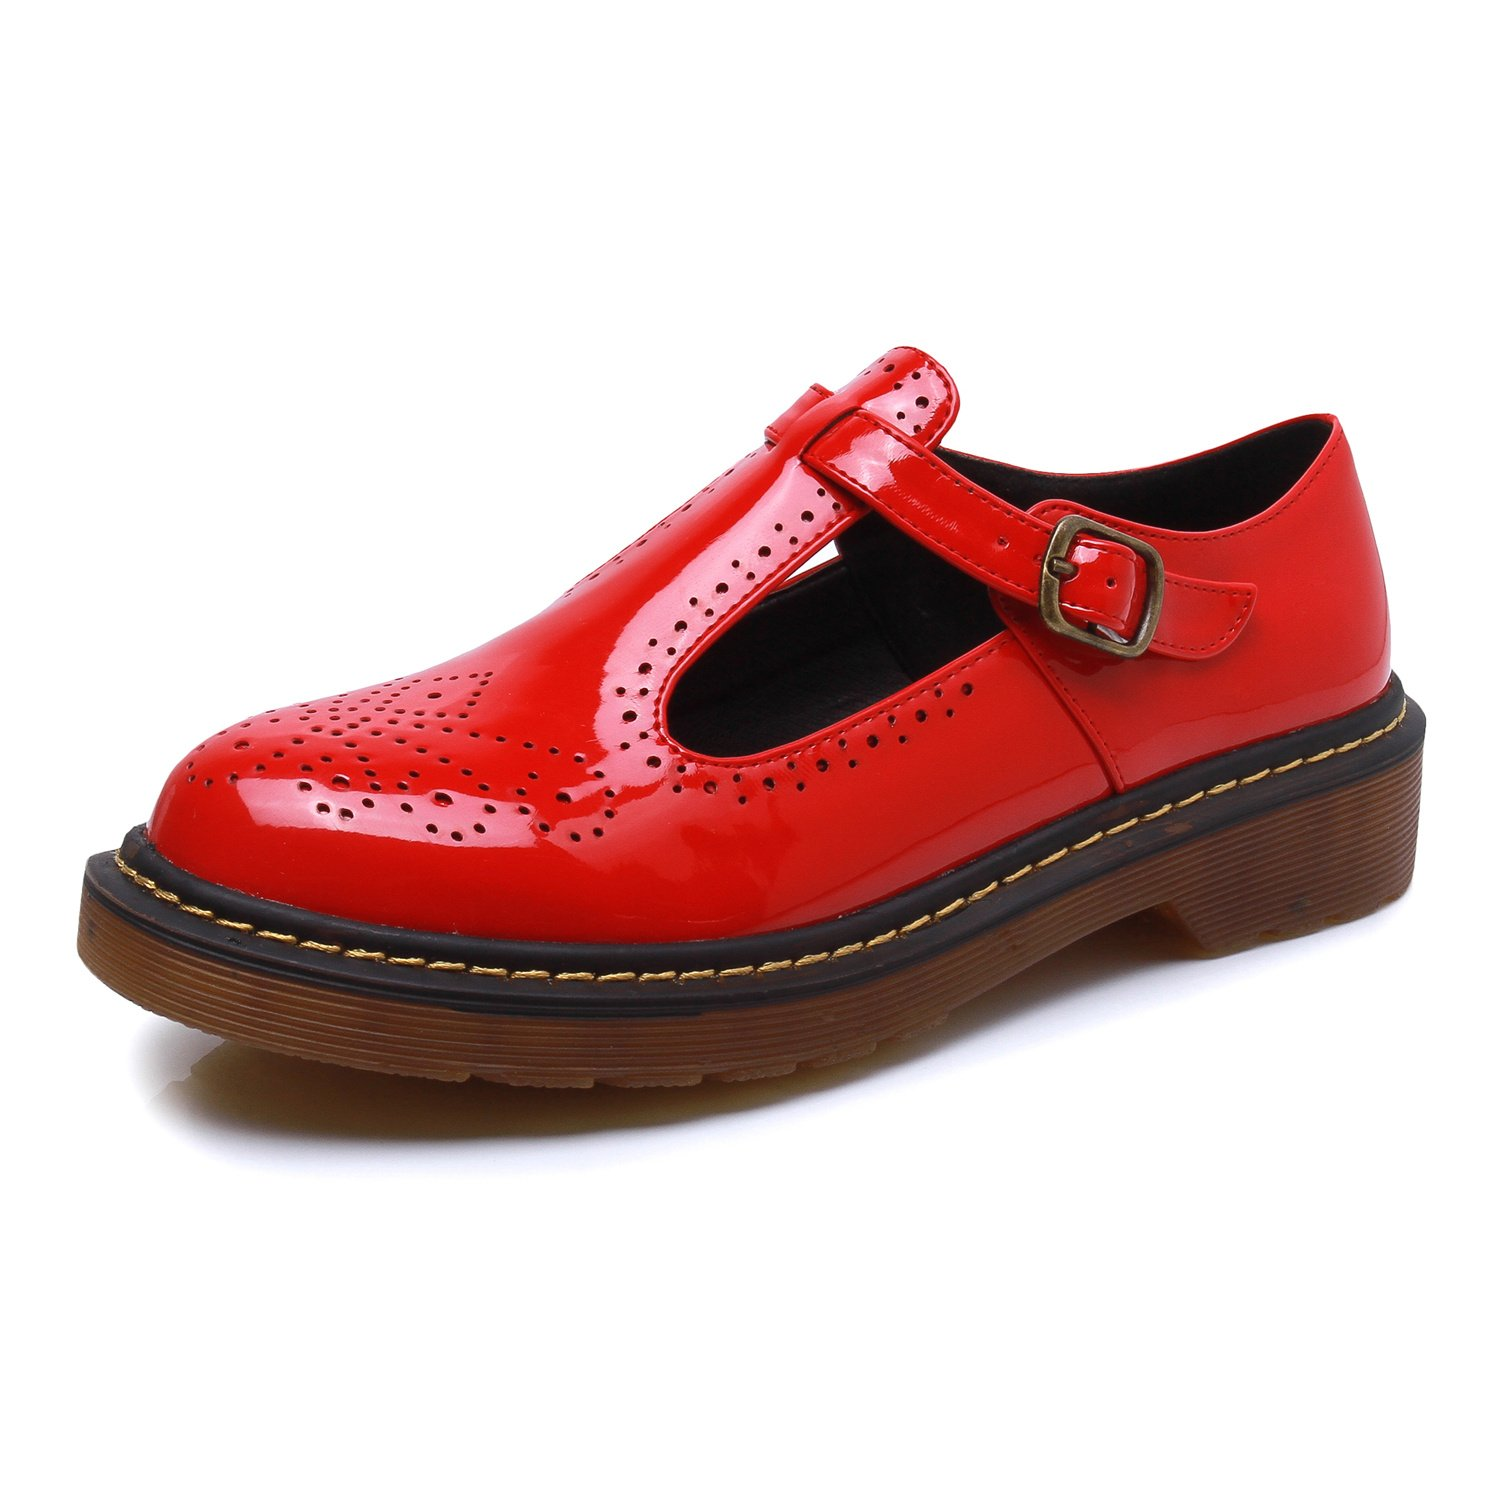 Smilun Women¡¯s Deby Oxford Brogues Shoes Pantent Leather Classic Lace-Up Flats Loafer or Women Red Size 7.5 B(M)US